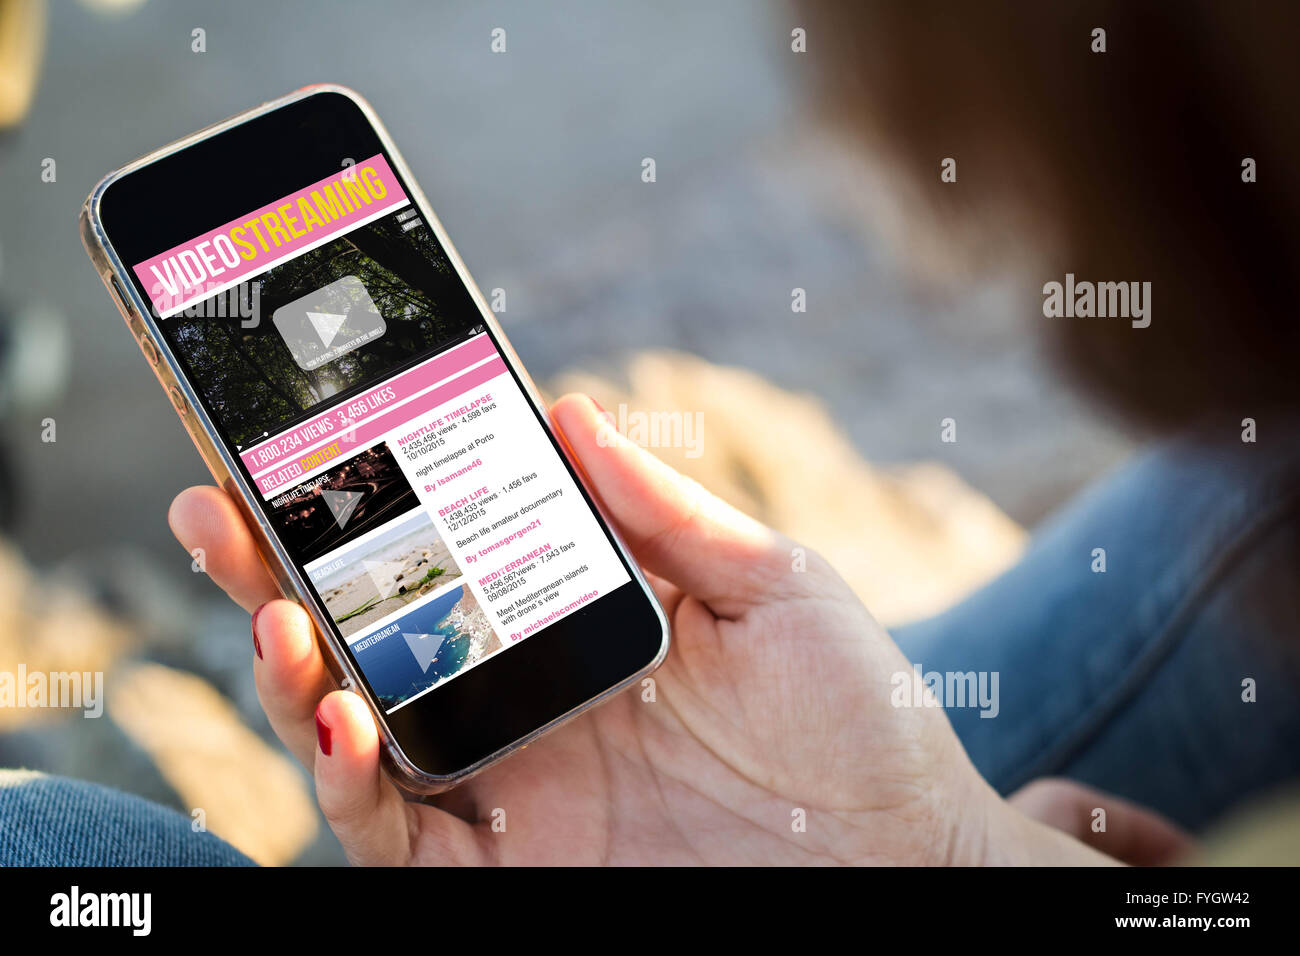 How to Watch Videos from Your Phone on Your TV forecasting